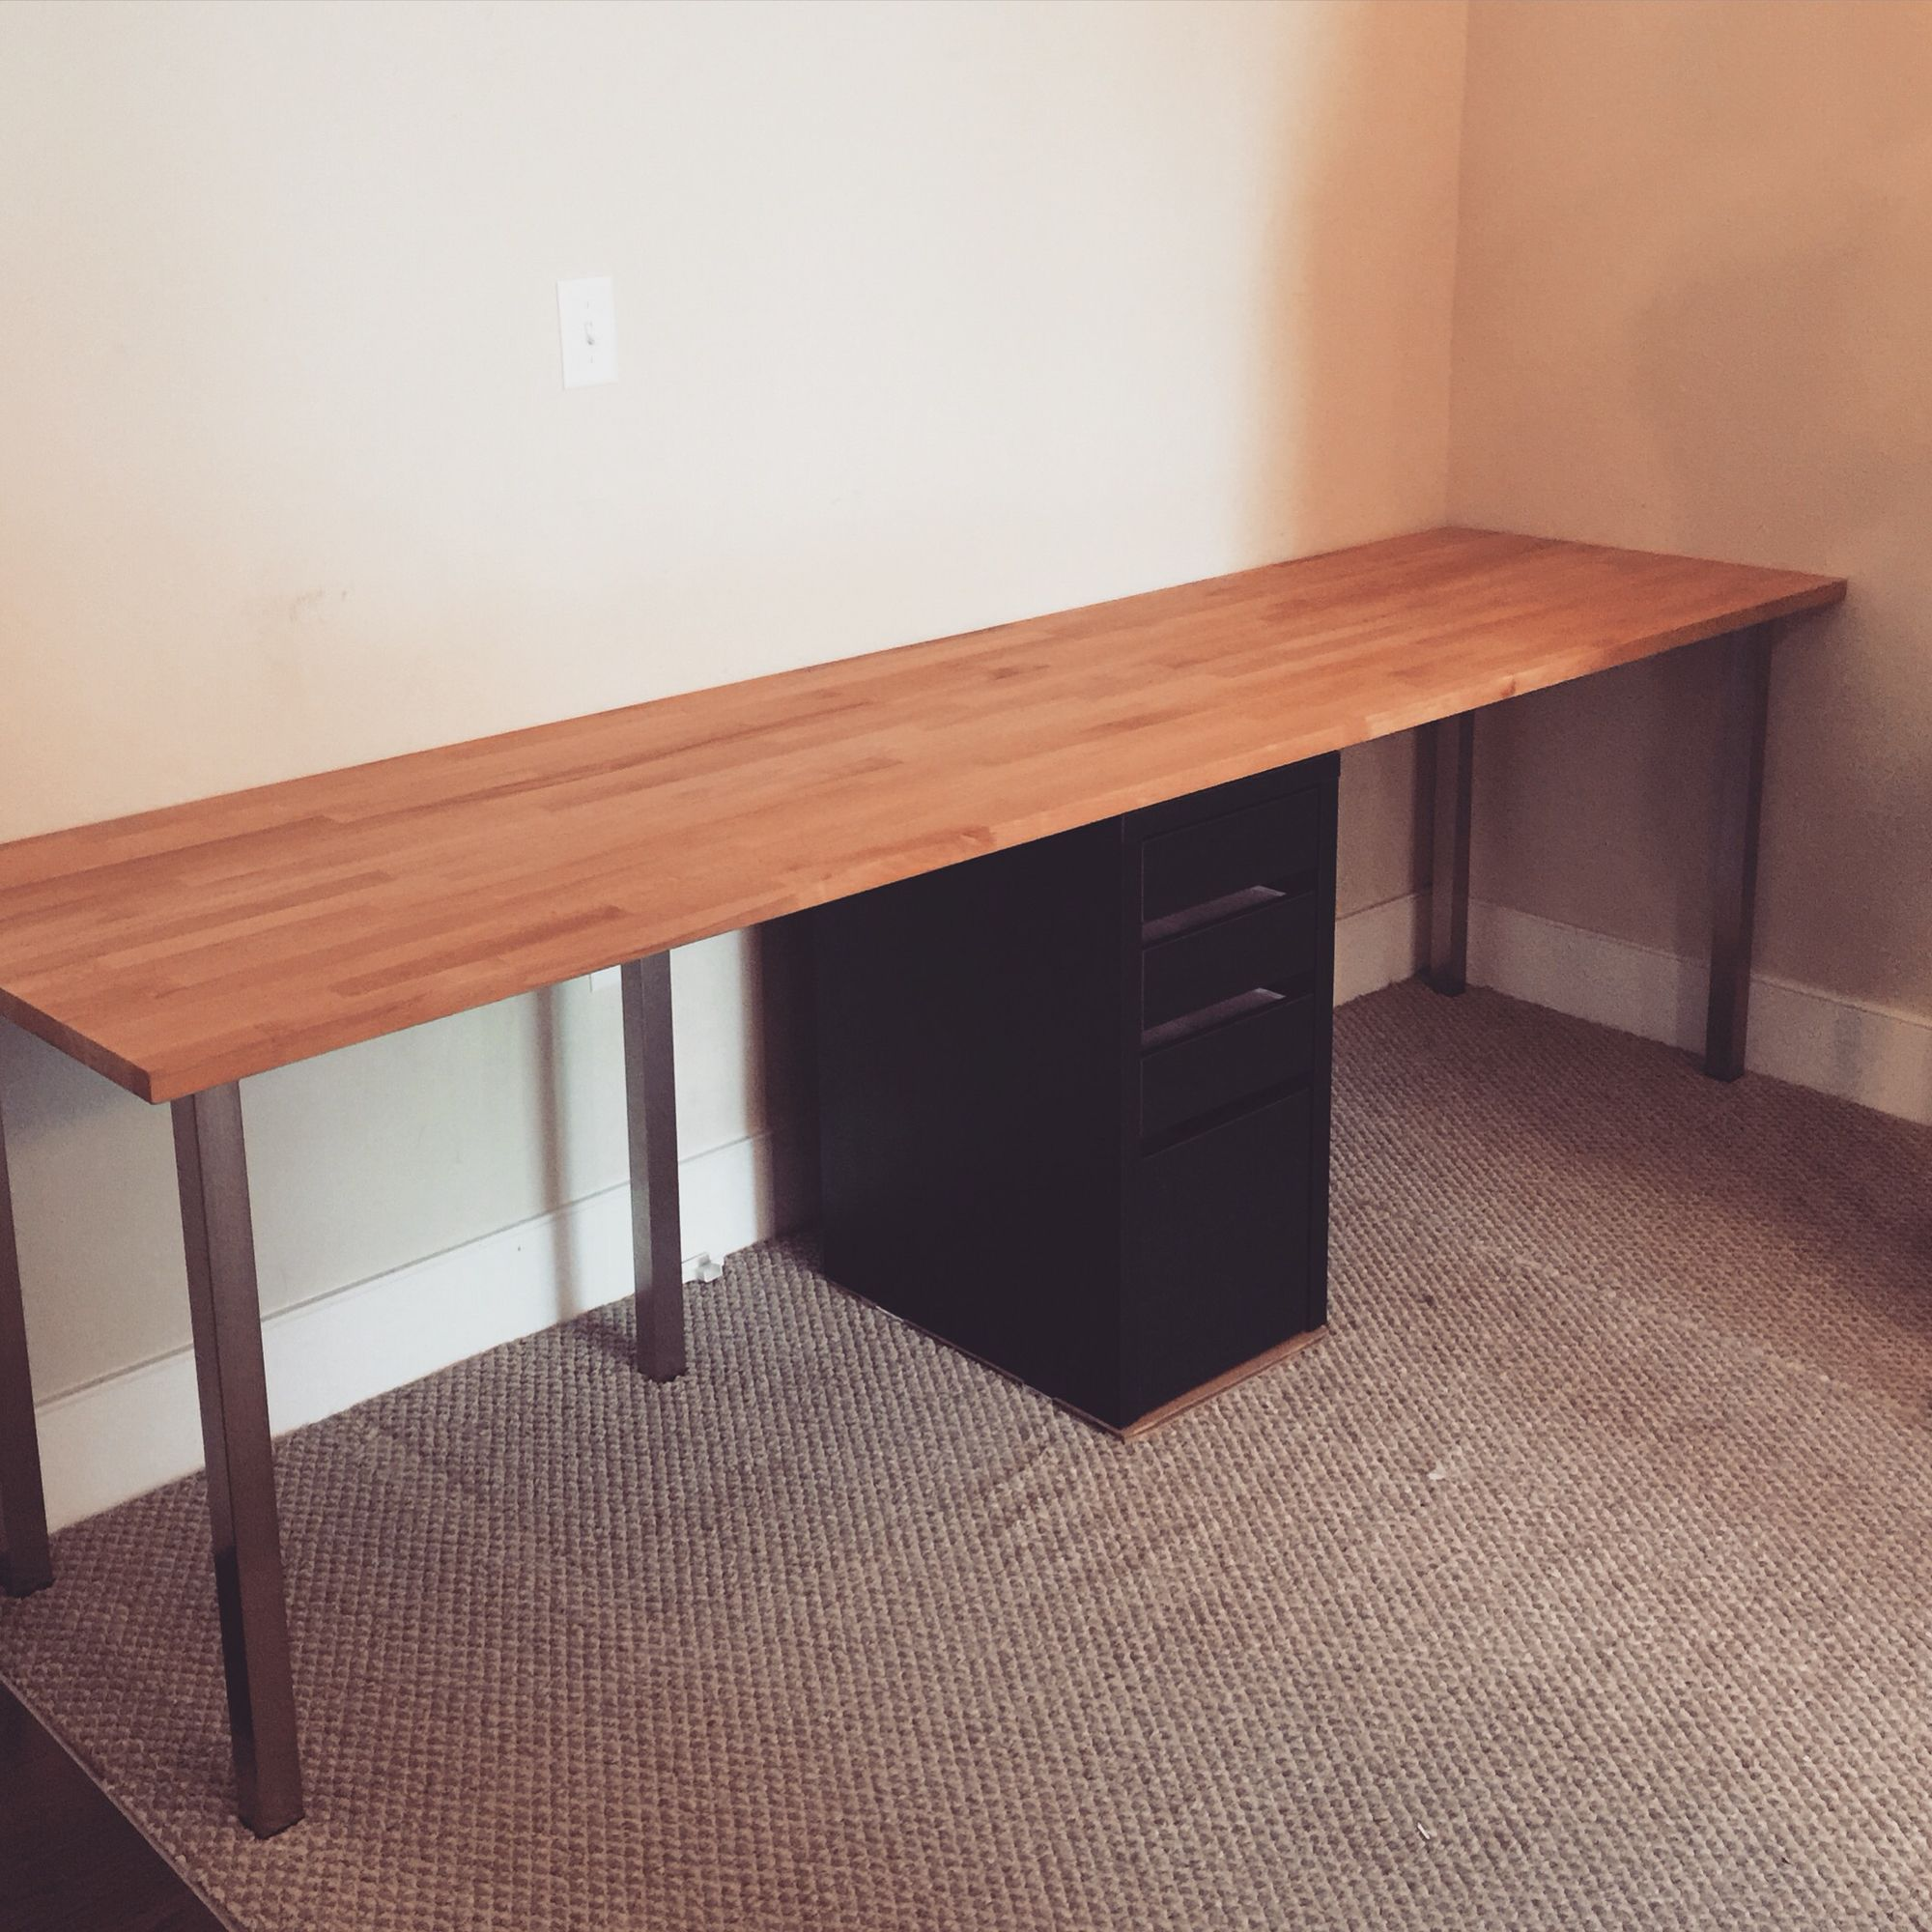 Diy Ikea Desk Parts Karlby Countertop, Beech $139 Sjunne Leg,